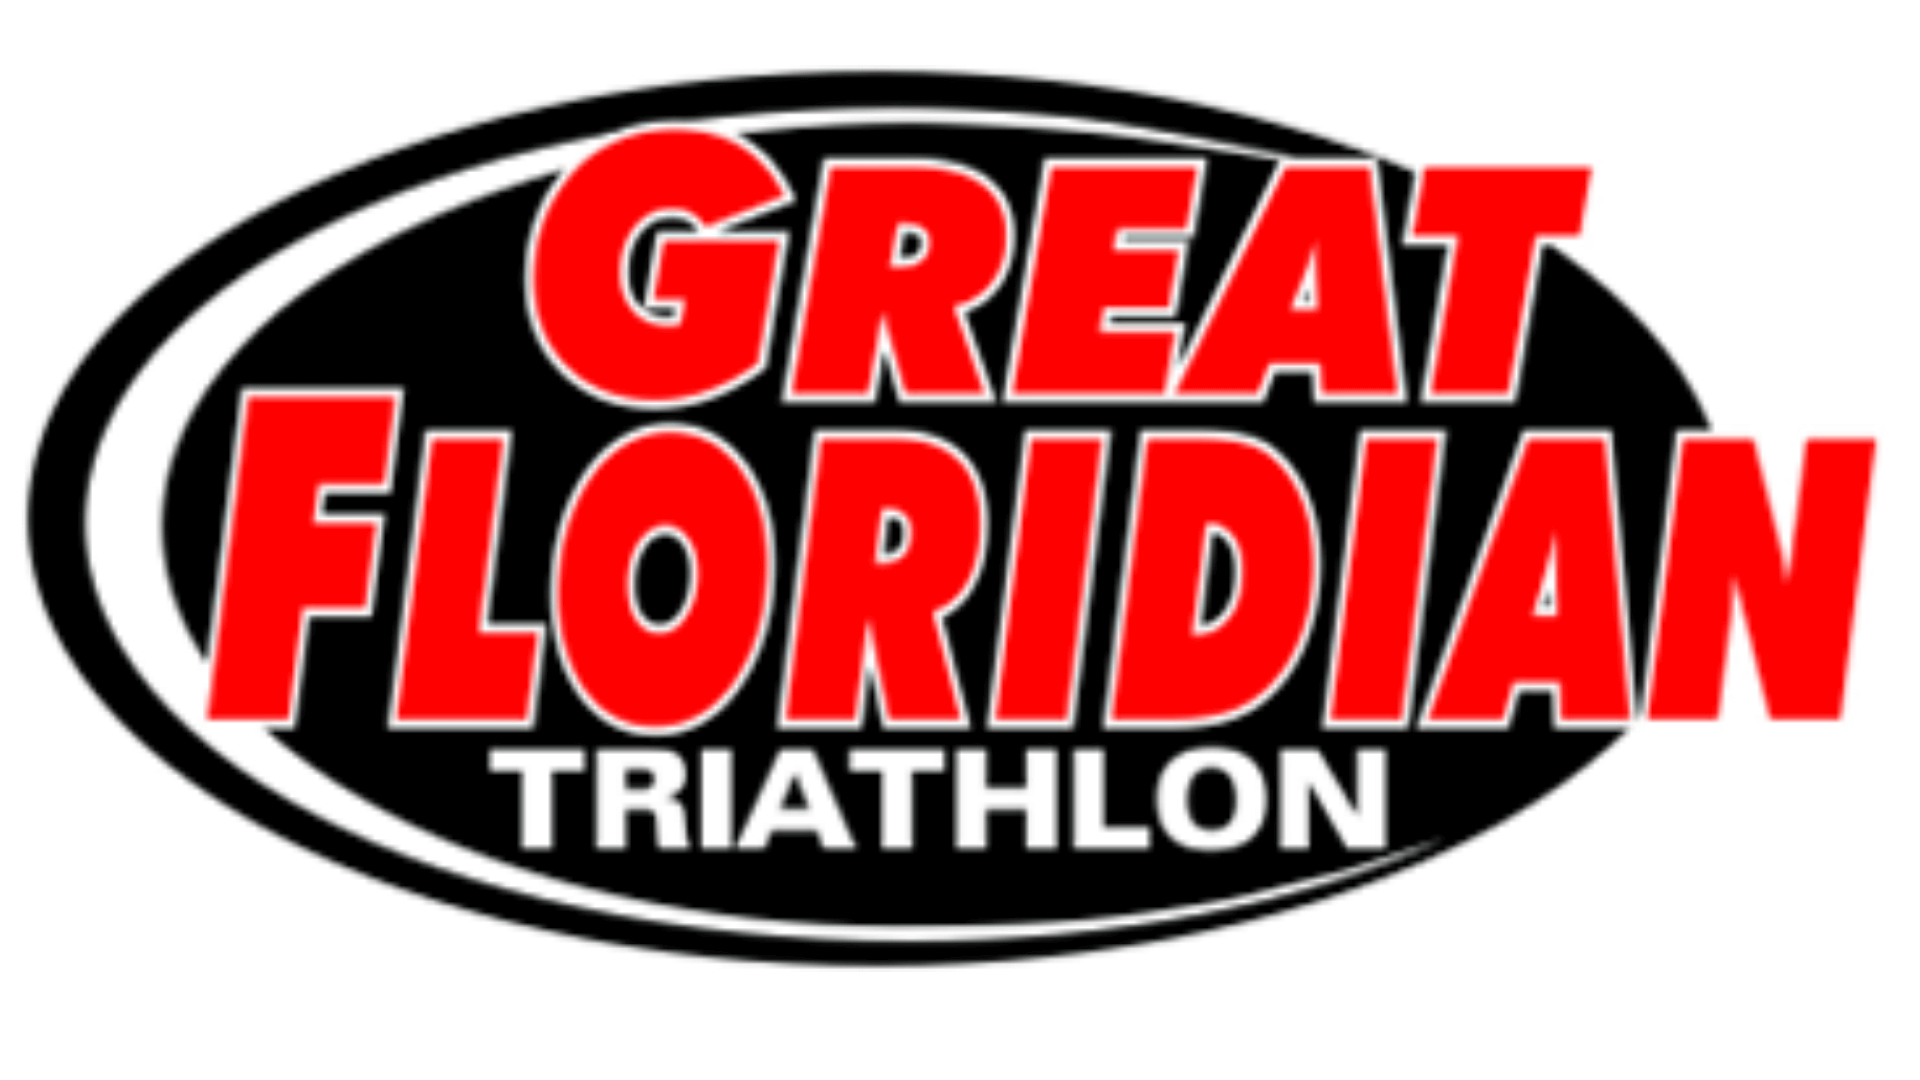 Great Floridian Triathlon